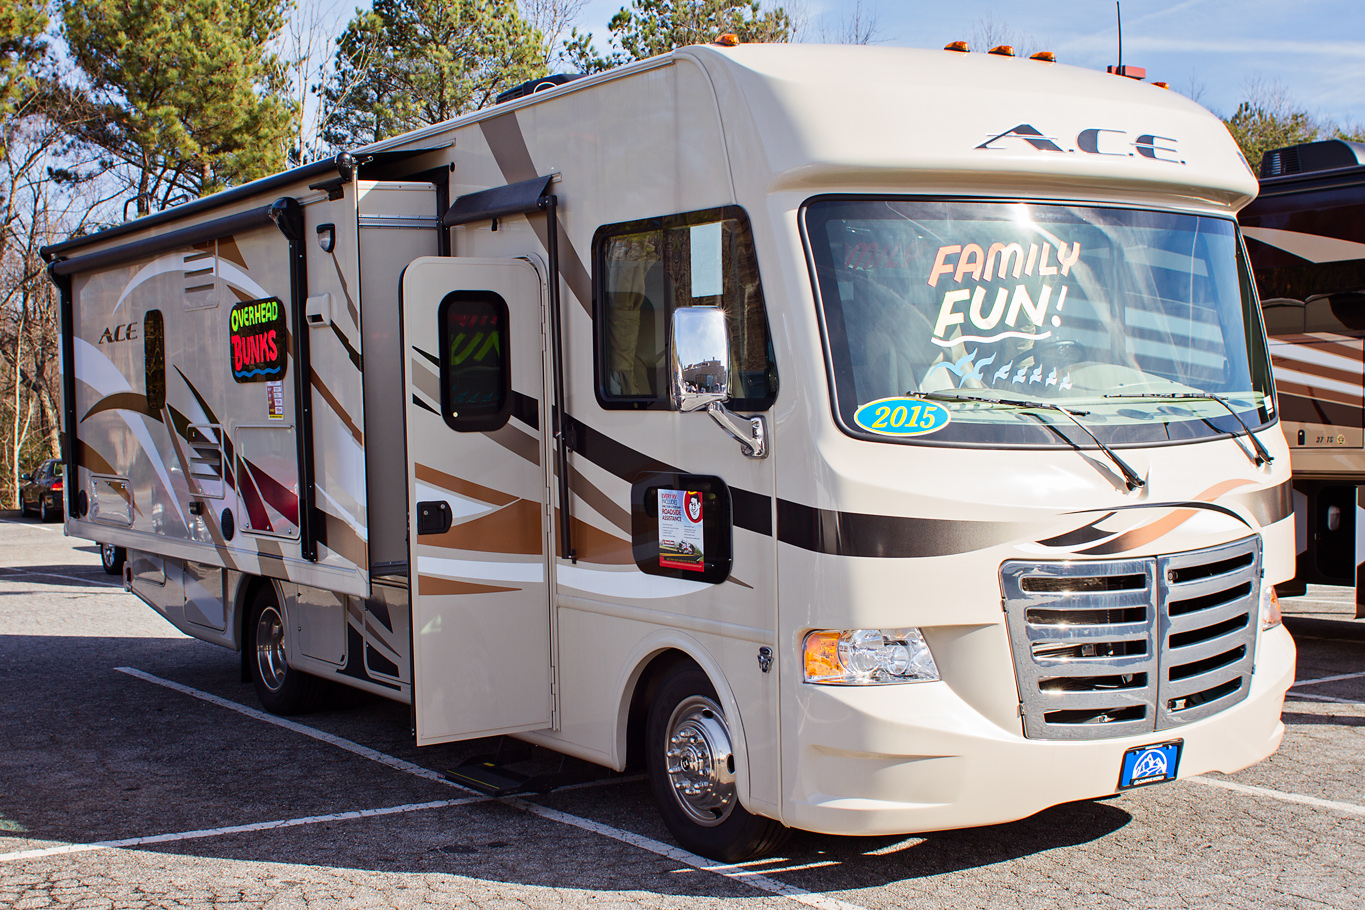 2015 Georgia Rv And Camper Show Photo Gallery